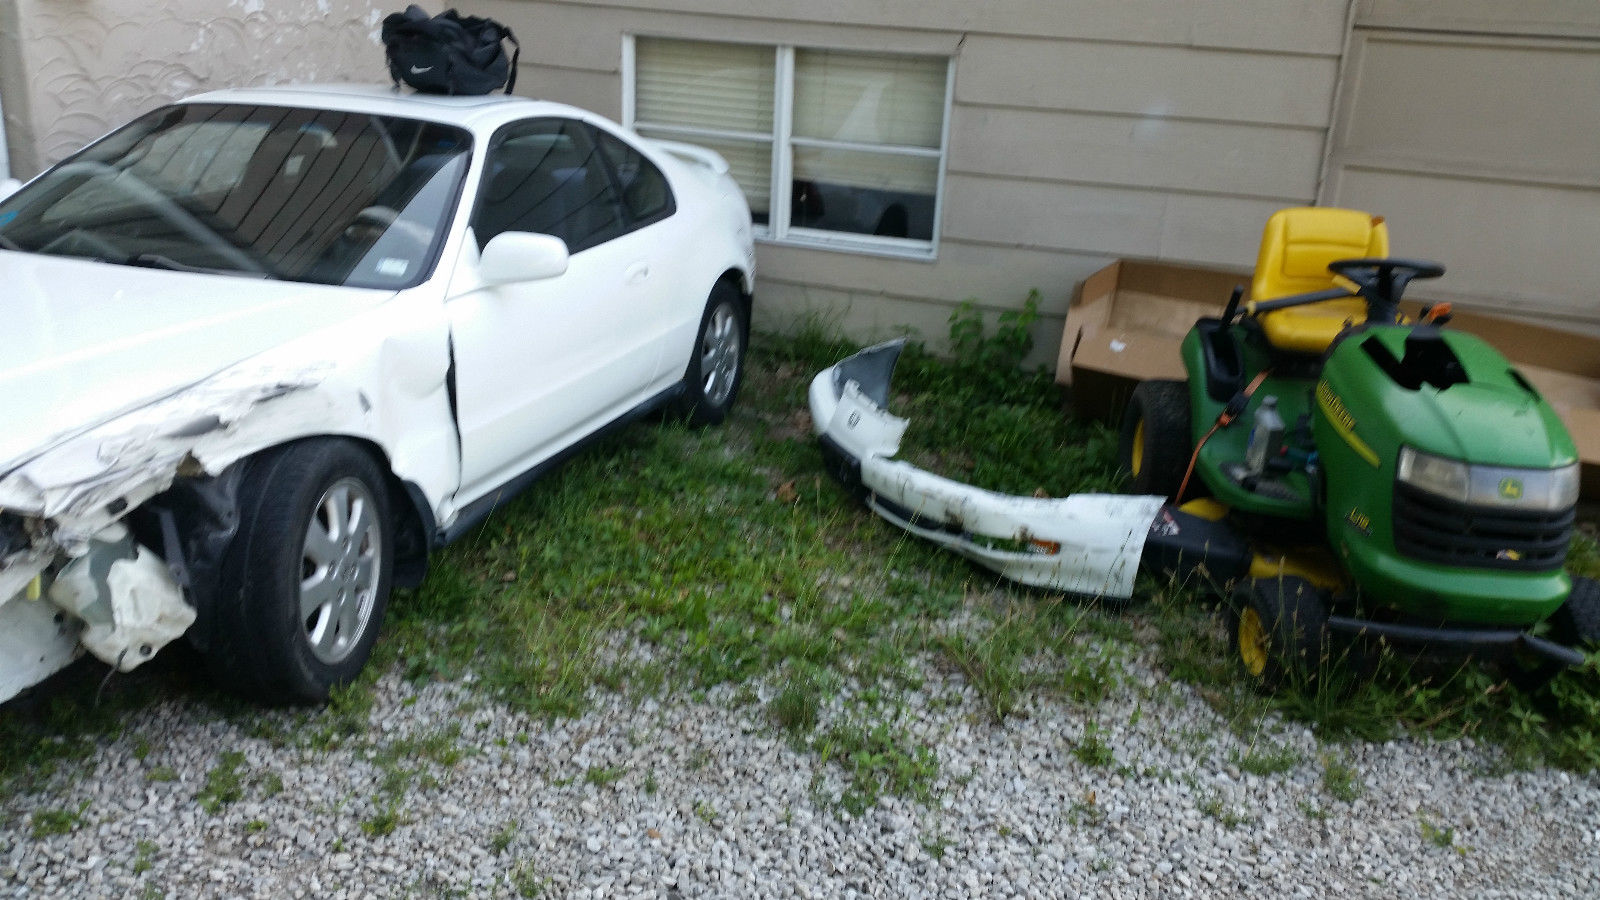 Honda Prelude Parts Car Near New Clutch And Gearbox 70k Miles On 1992 Si Engine